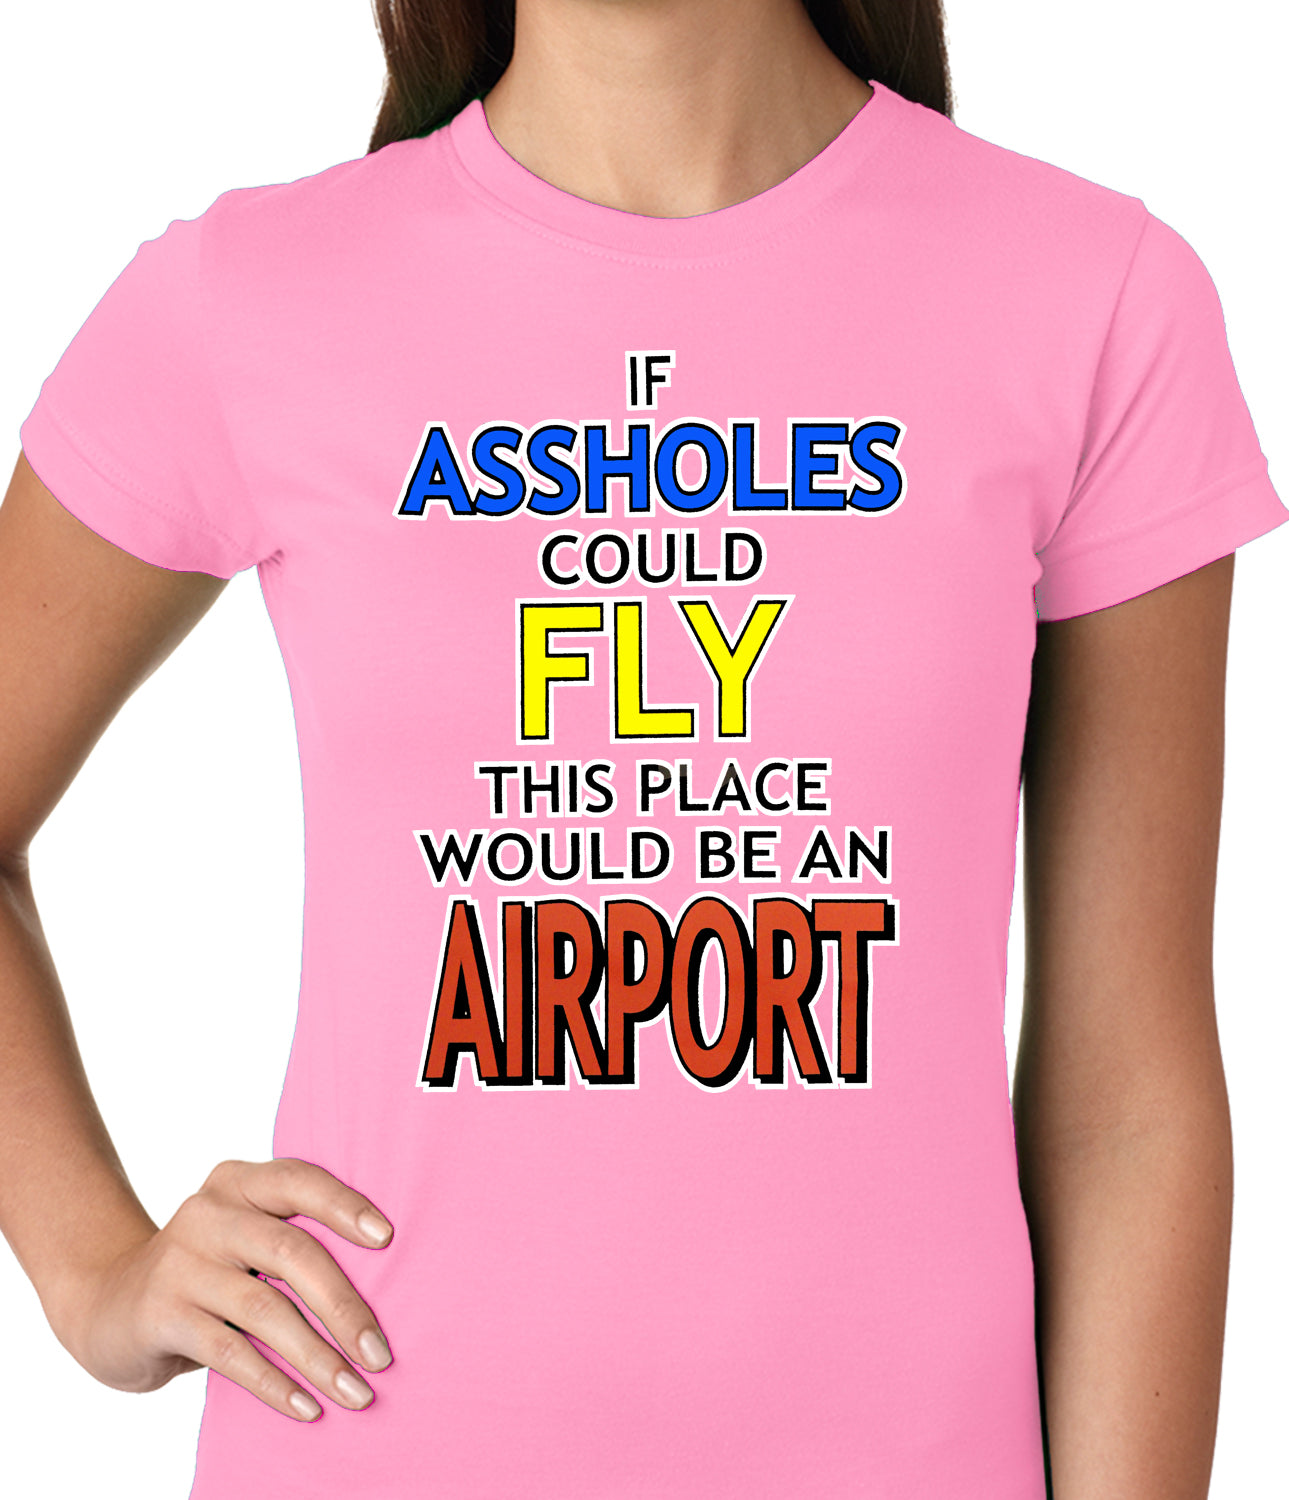 If Assholes Could Fly, This Place Would Be An Airport Girls T-shirt